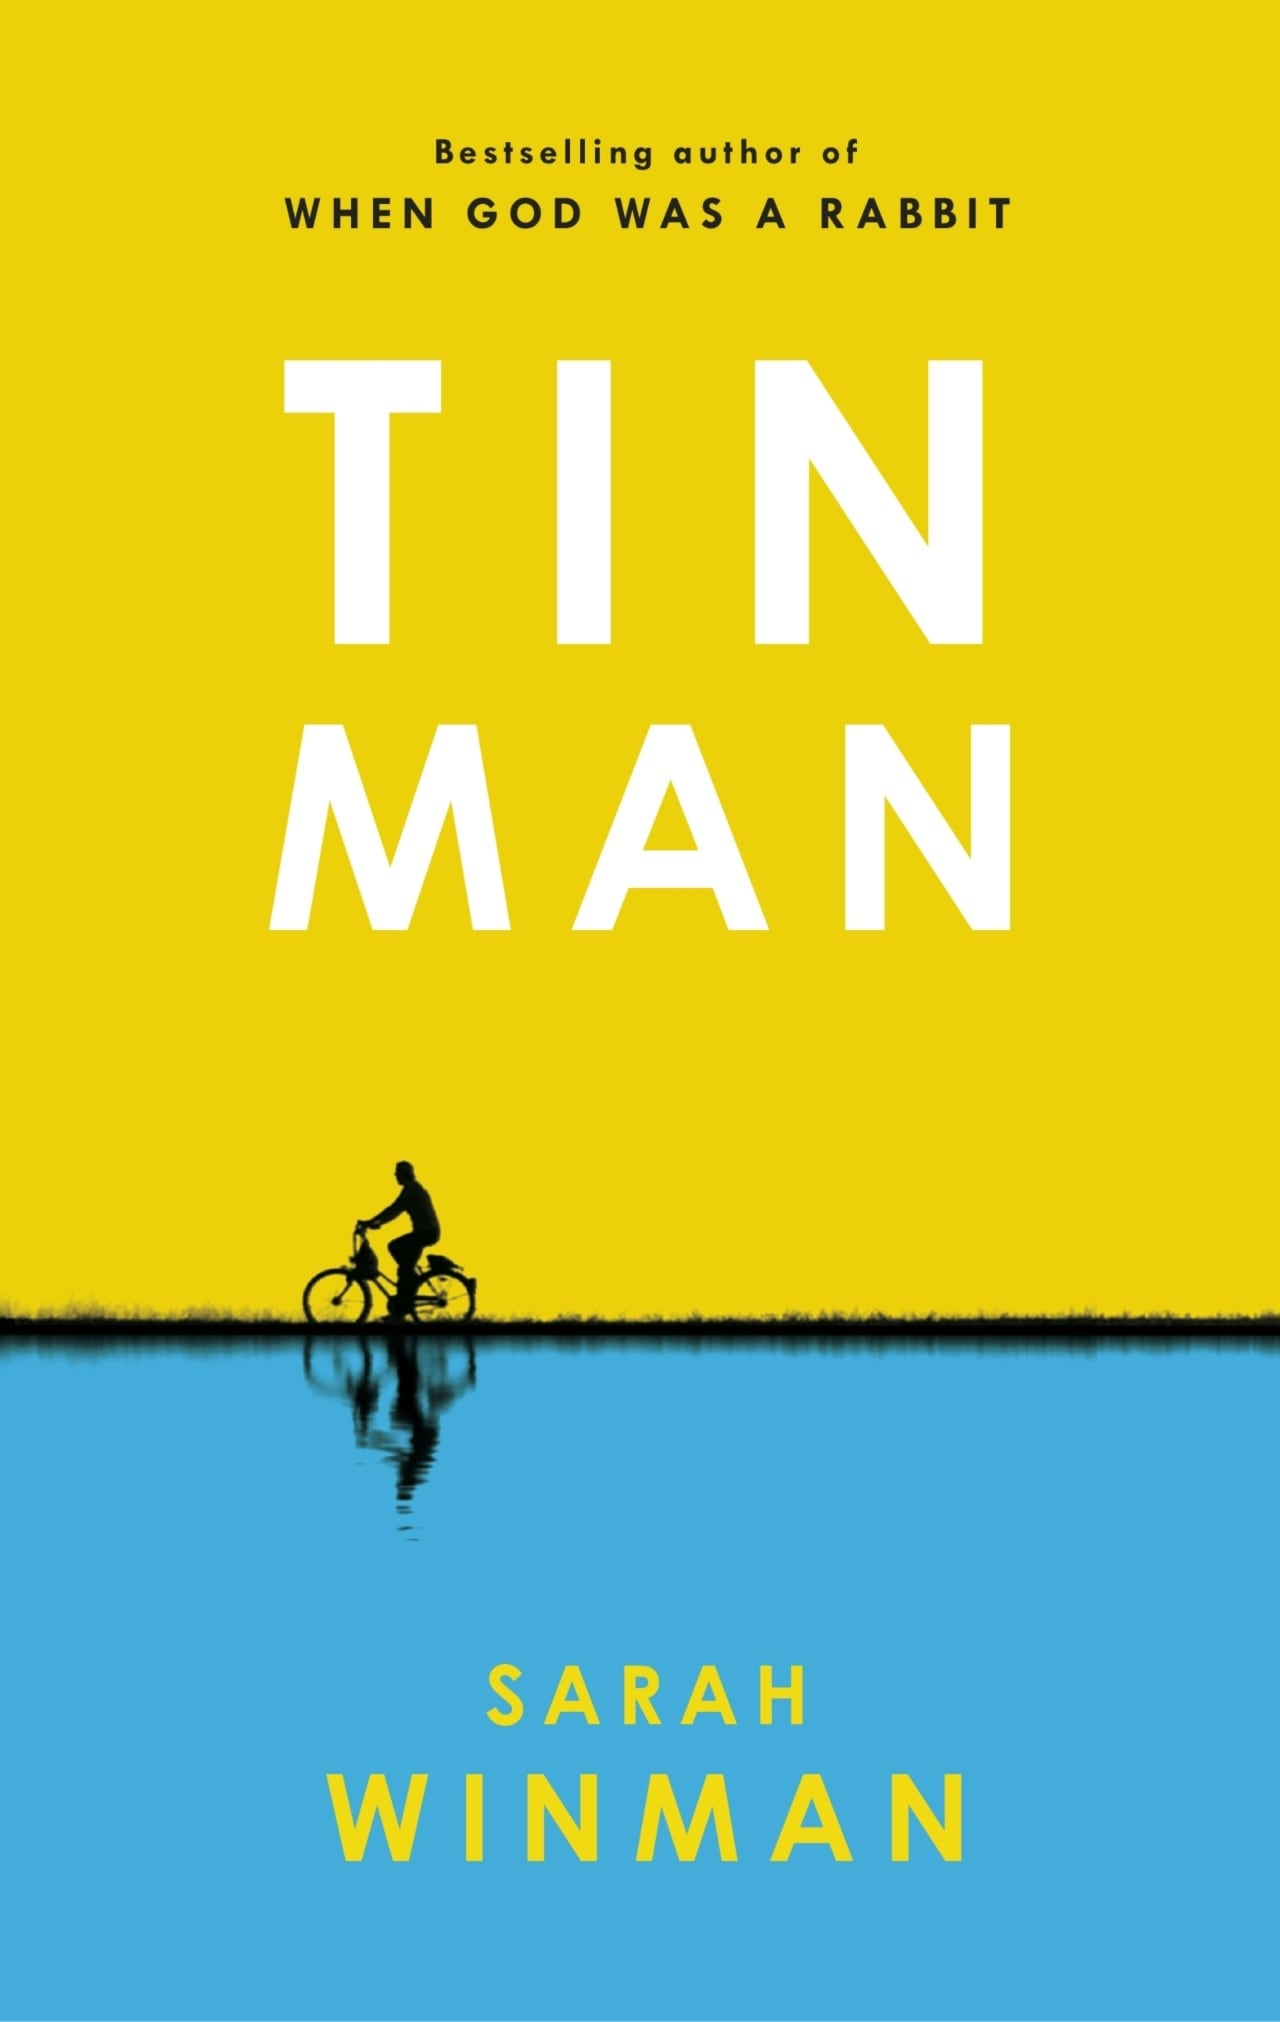 Vogue reviews: Tin Man, a story of friendship, loss and living